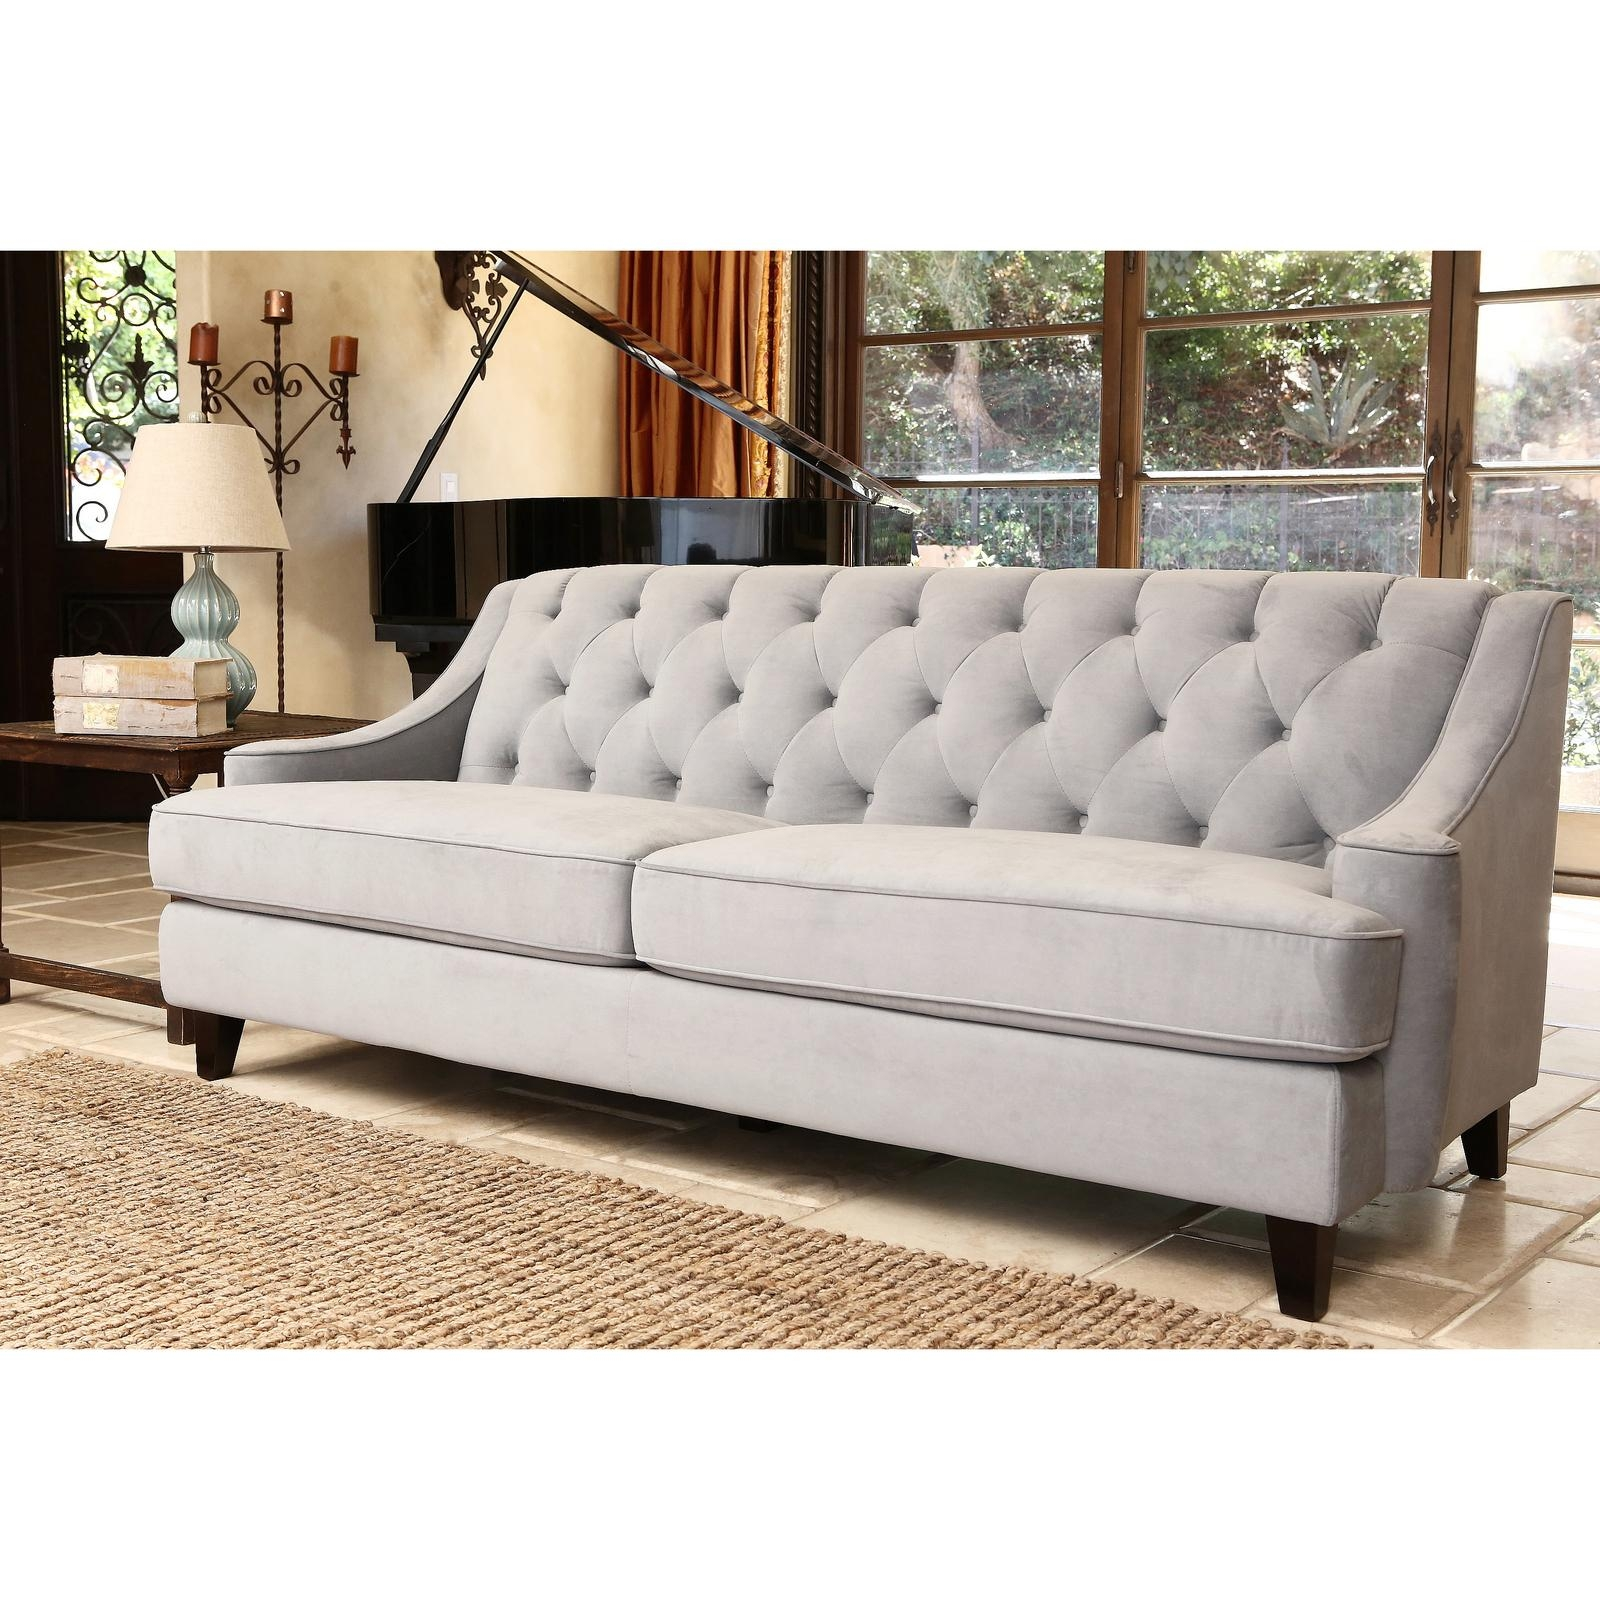 23 Best Cheap Tufted Sofas